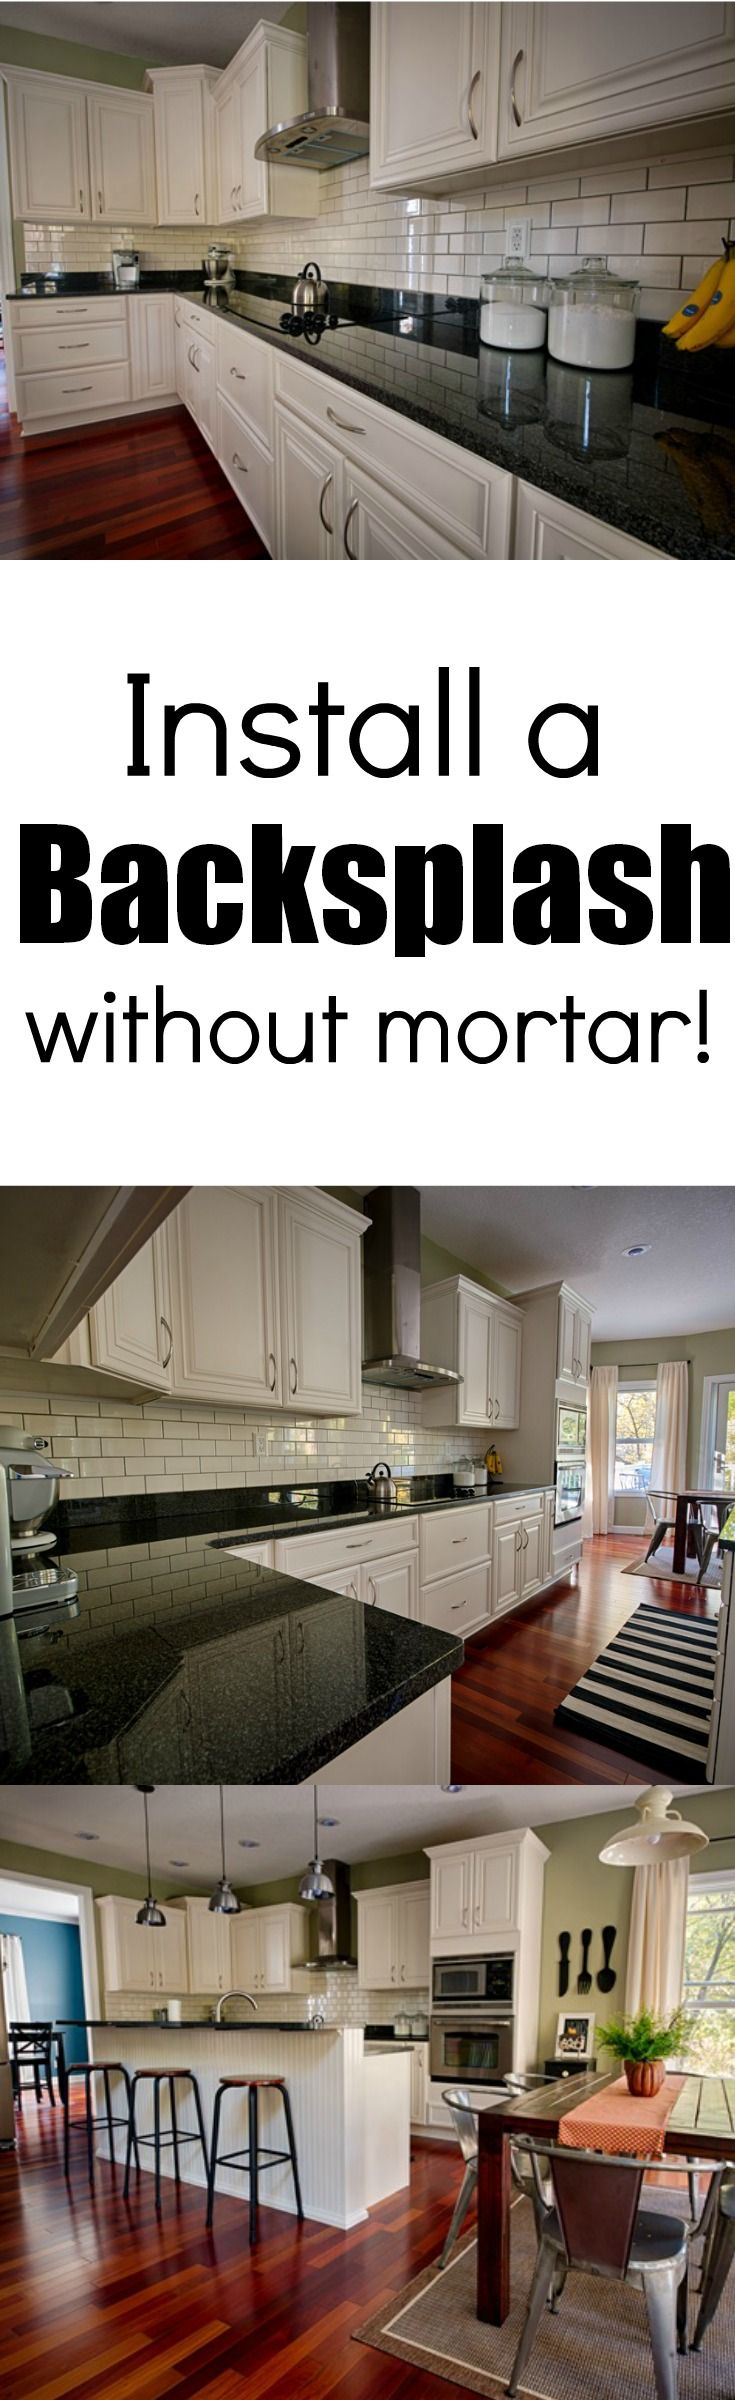 Kitchen backsplash subway tile edition learning kitchens and house